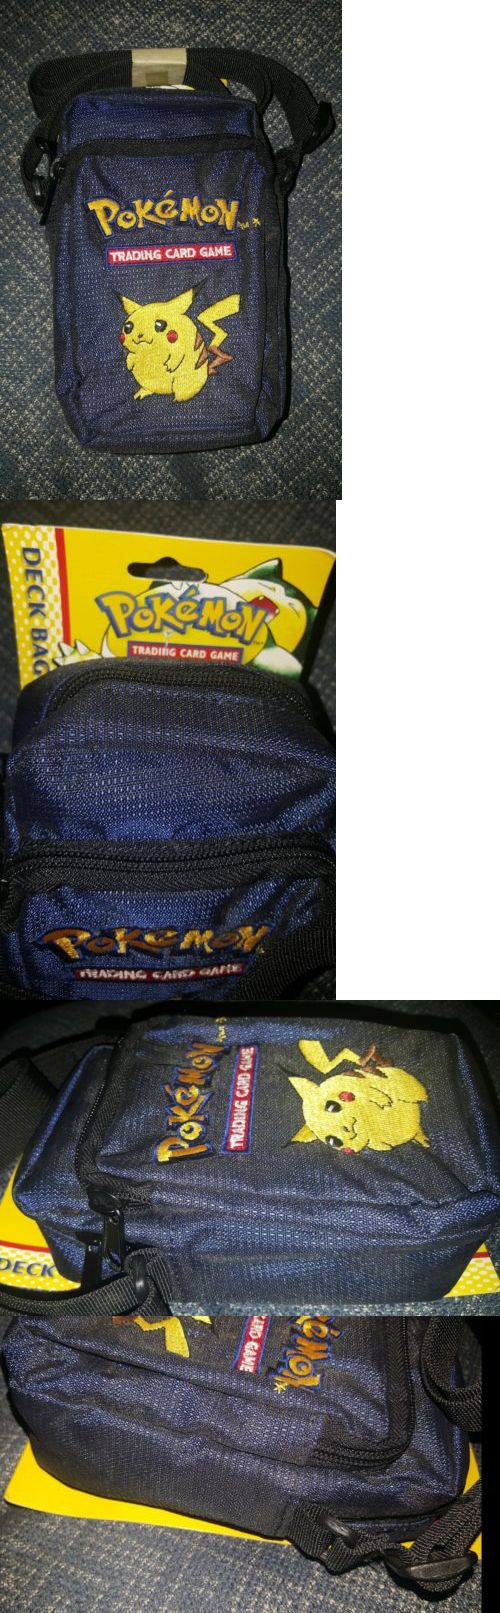 Other Pok mon TCG Items 2608: New Pokemon Deck Bag Very Rare!! Wotc Holds Trading Cards And More. Pikachu 1998 -> BUY IT NOW ONLY: $35 on eBay!